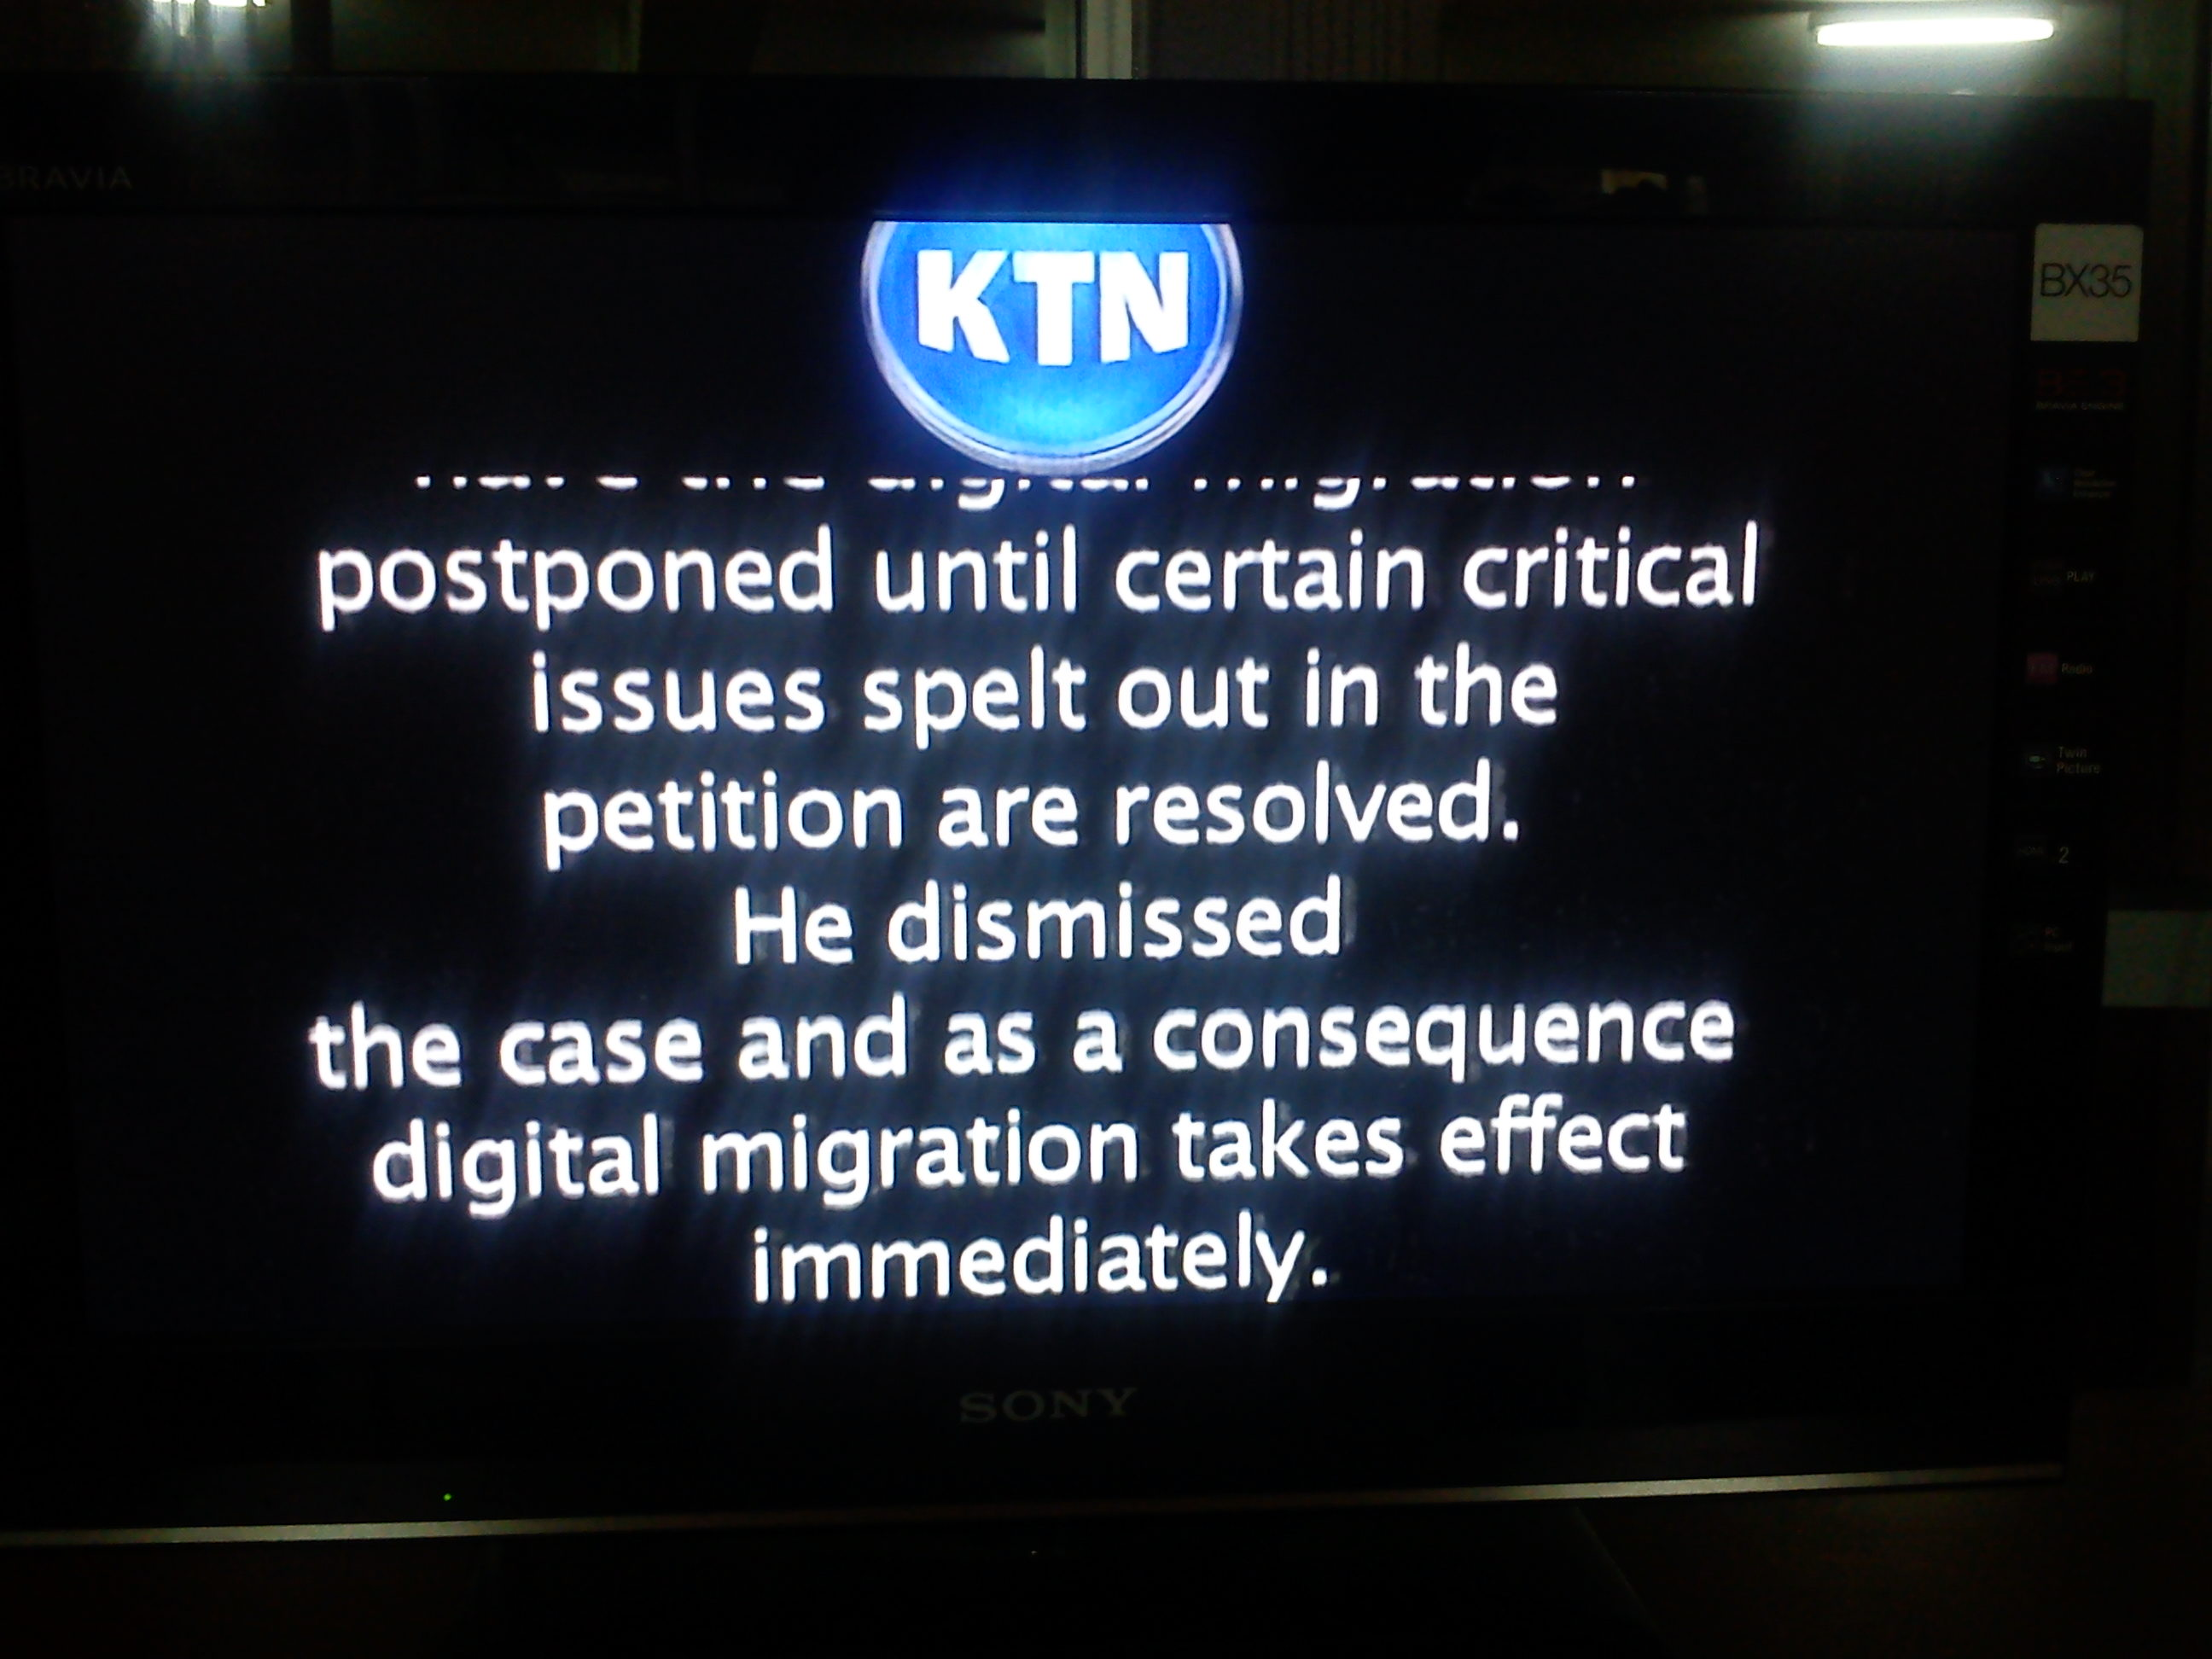 It's DARK CHRISTMAS as NTV, KTN, CITIZEN and QTV  SWITCH OFF transimission in Kenya